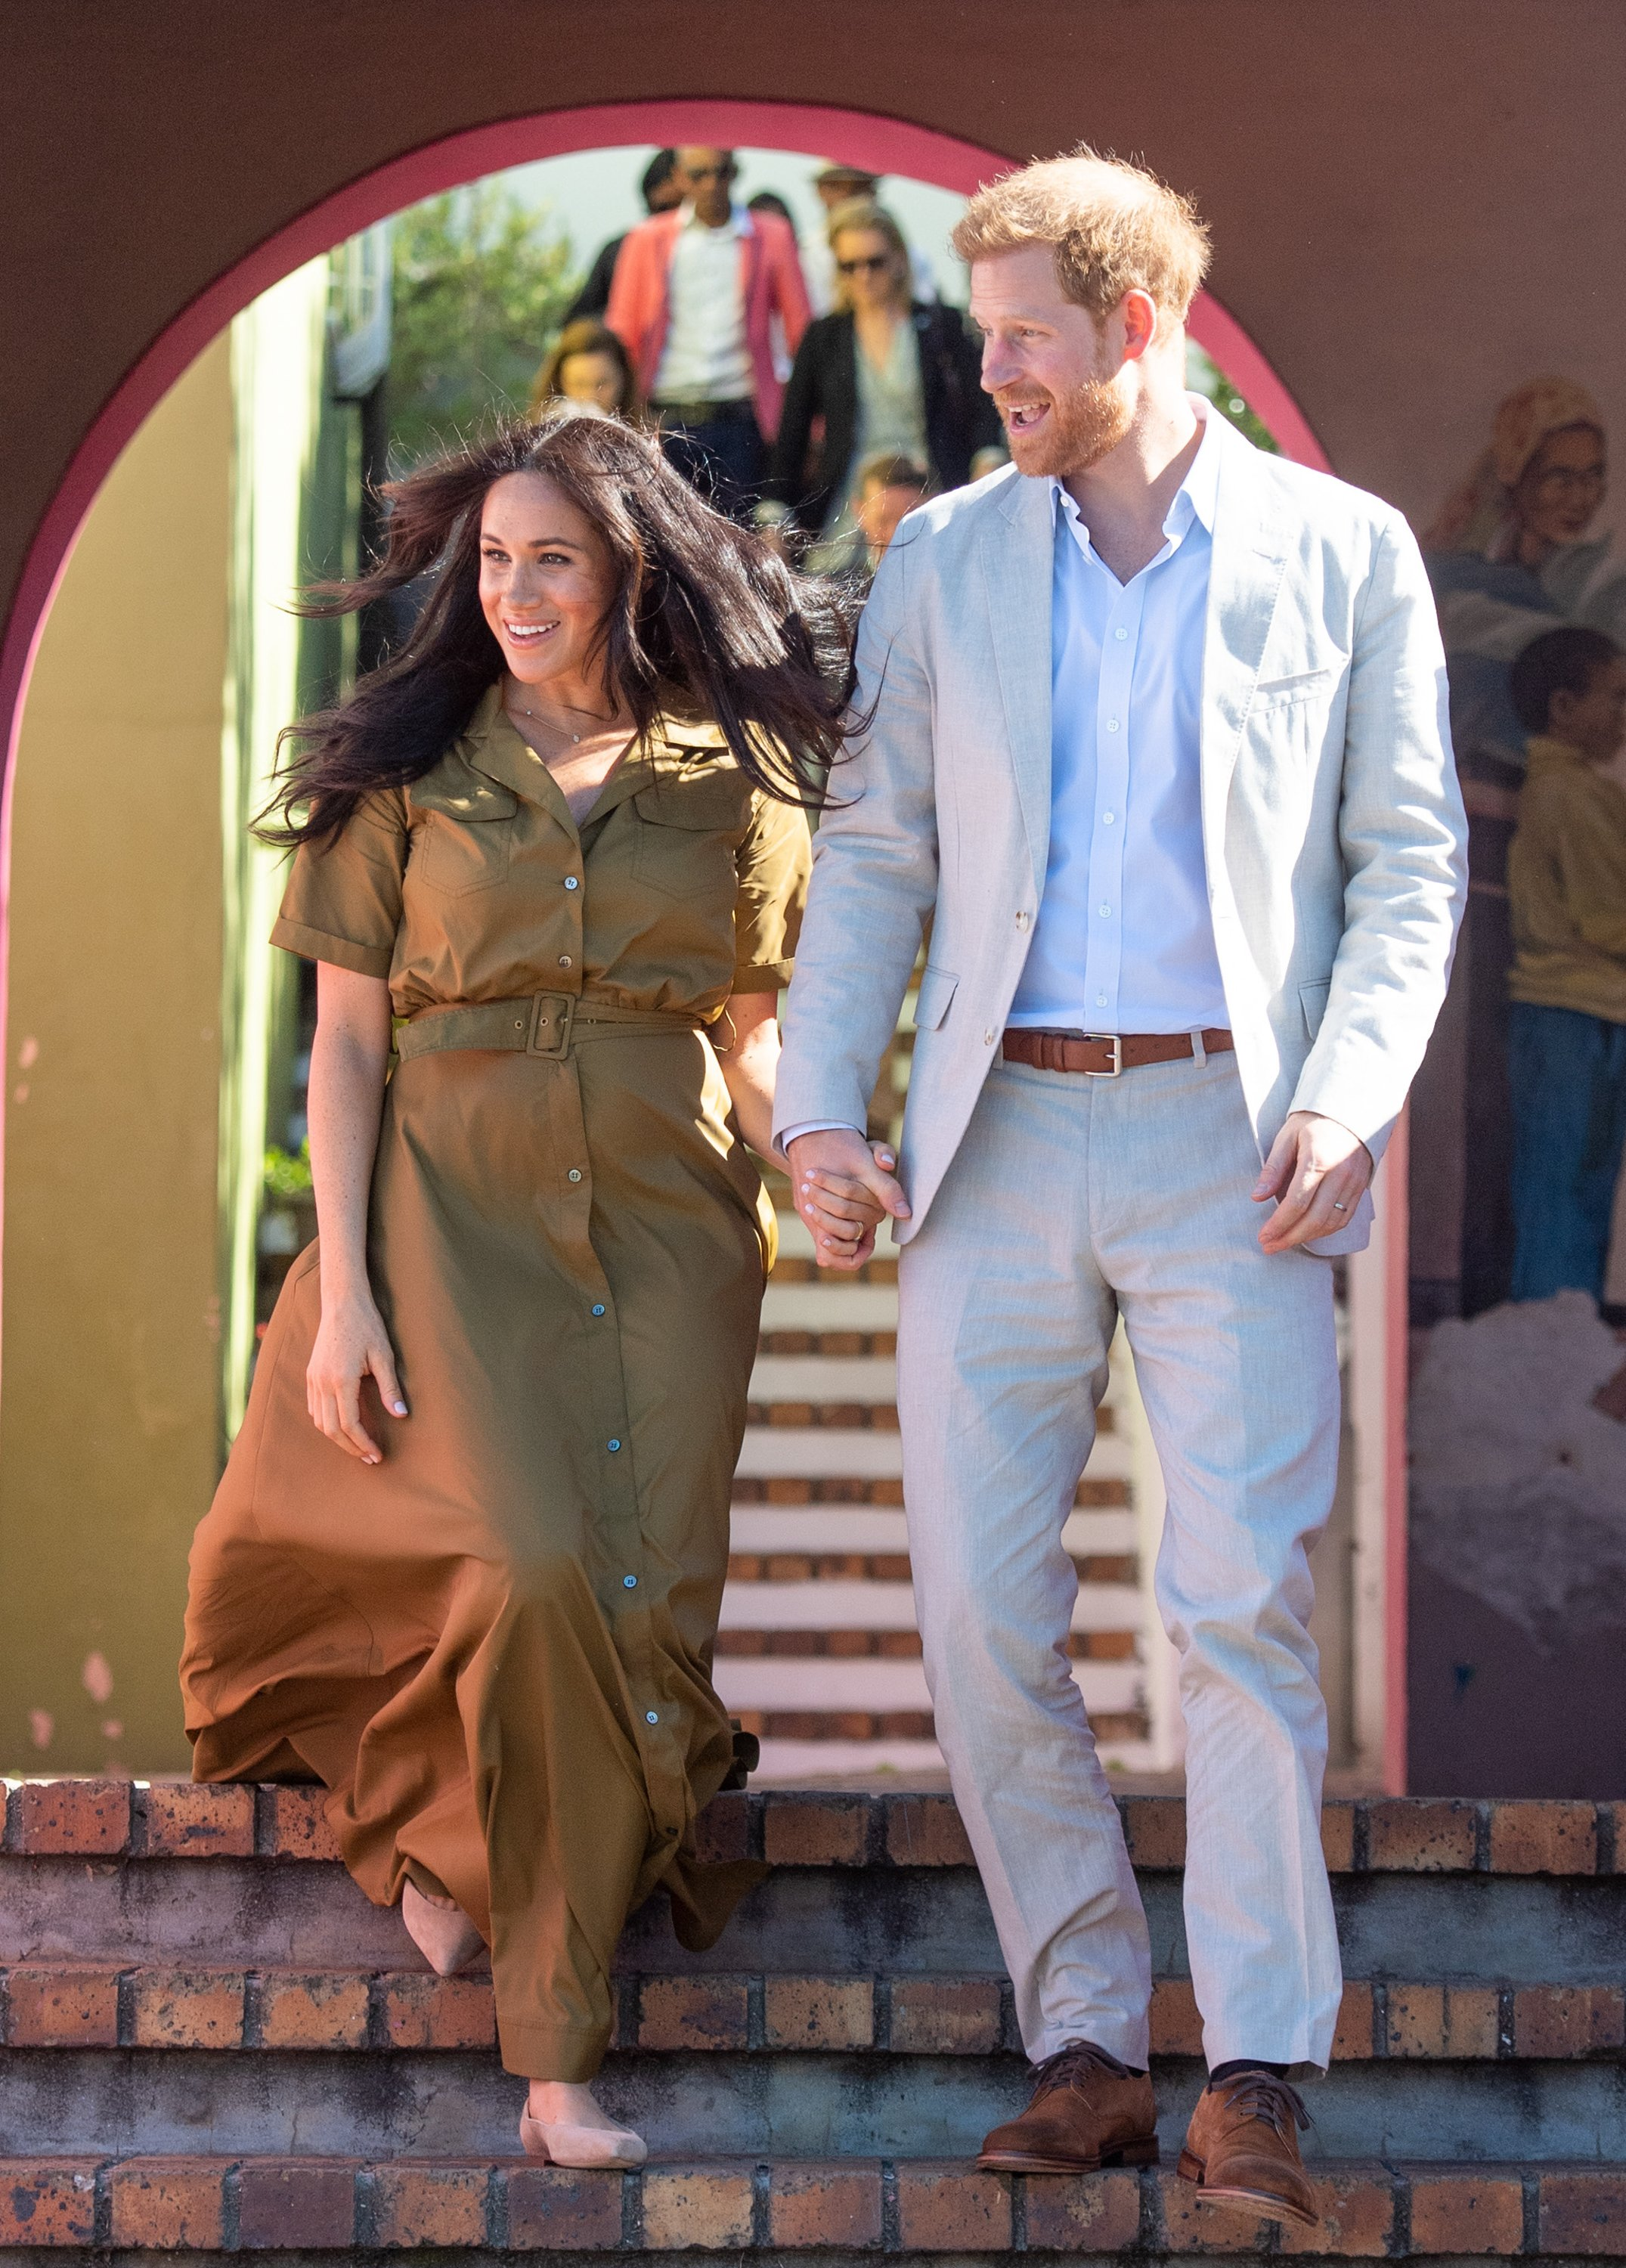 Meghan Markle and Prince Harry attend Heritage Day in Cape Town, South Africa on September 24, 2019 | Photo: Getty Images